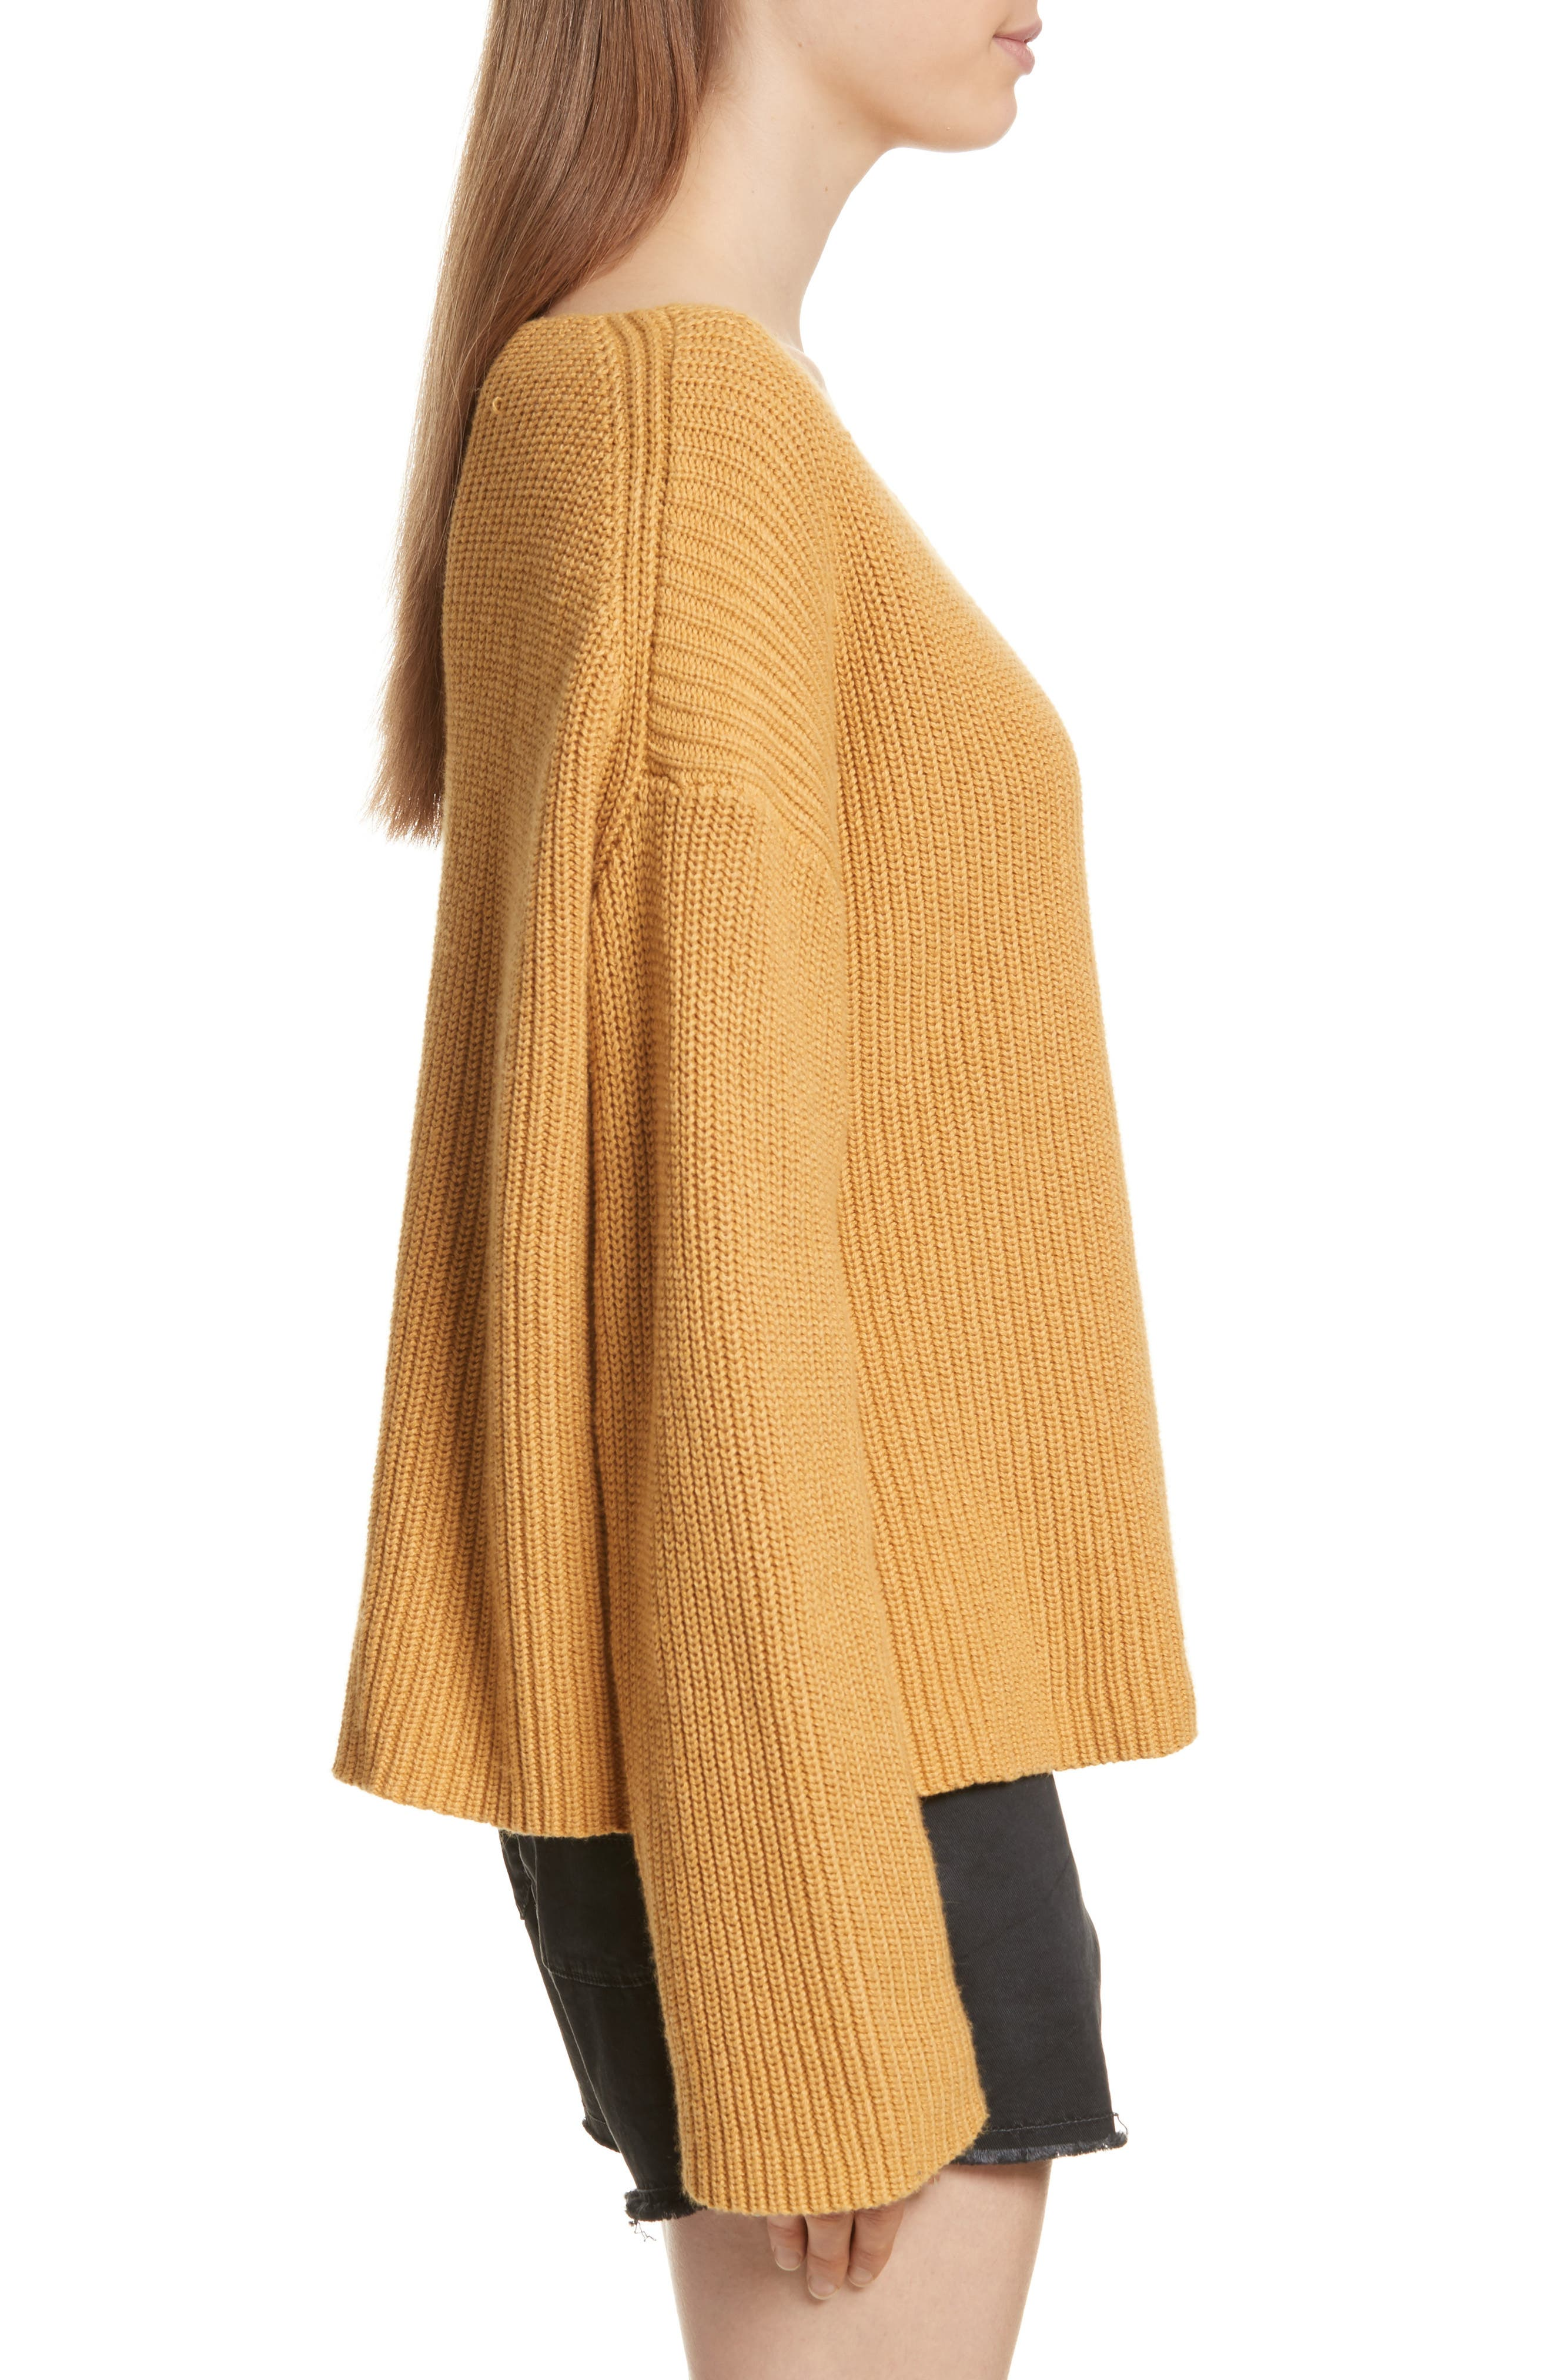 Martindale Ribbed Cotton, Cashmere & Silk Sweater,                             Alternate thumbnail 3, color,                             Mustard